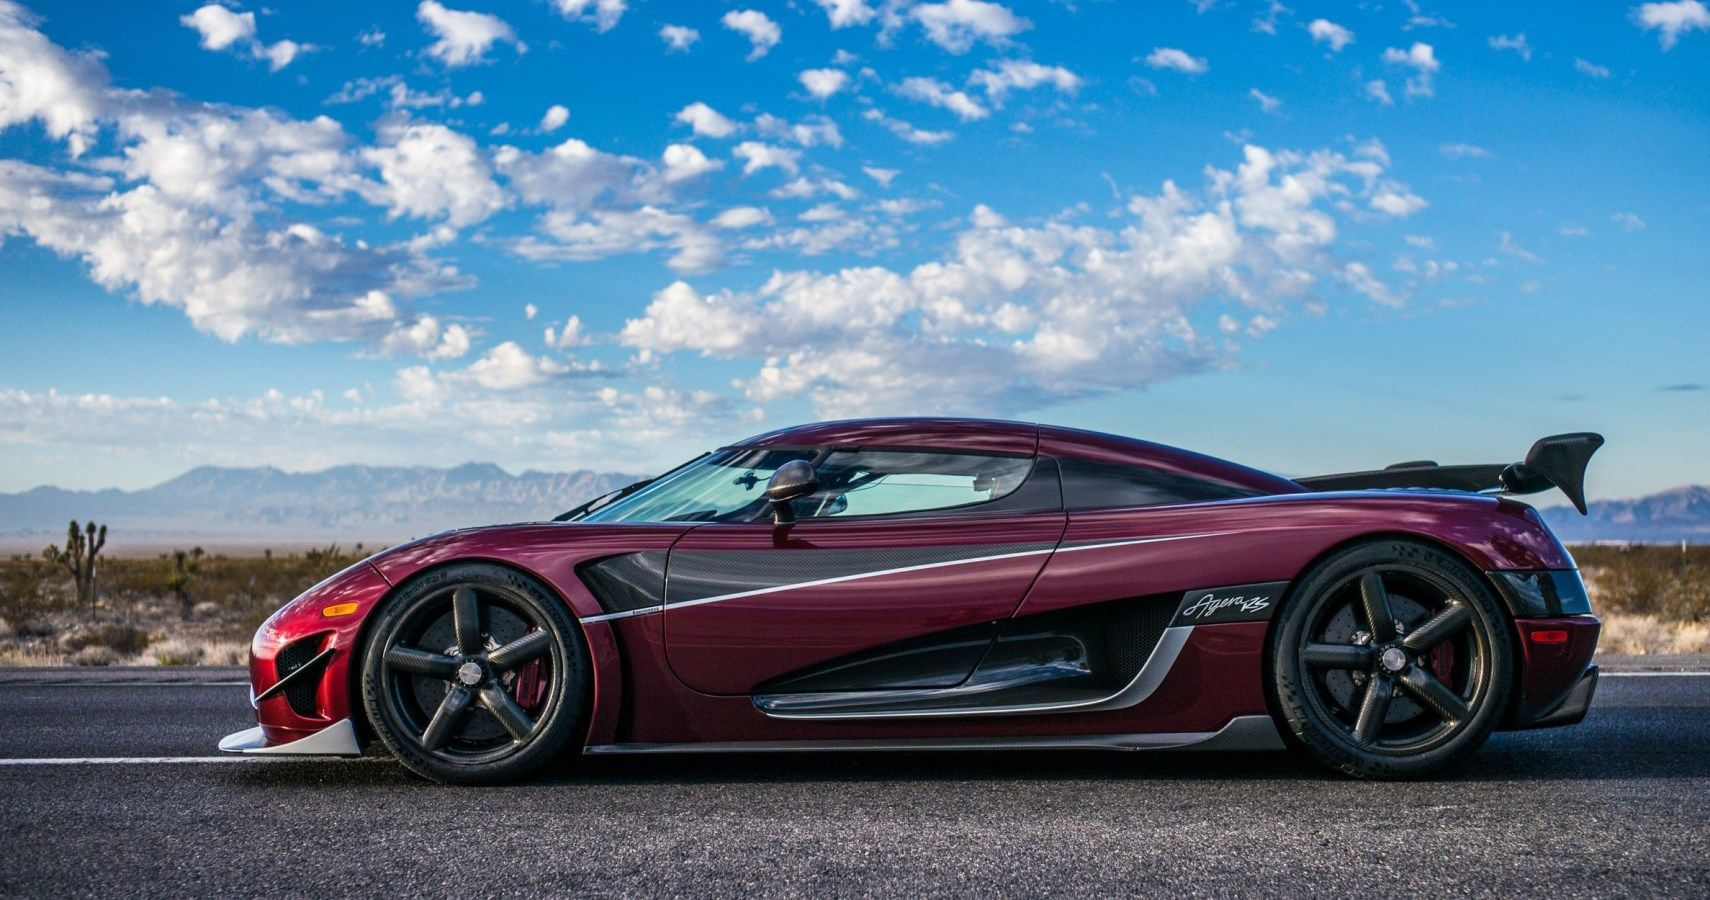 Koenigsegg Gets Cheeky Celebrating Agera RS's Speed Record Amid SSC Tuatara Controversy